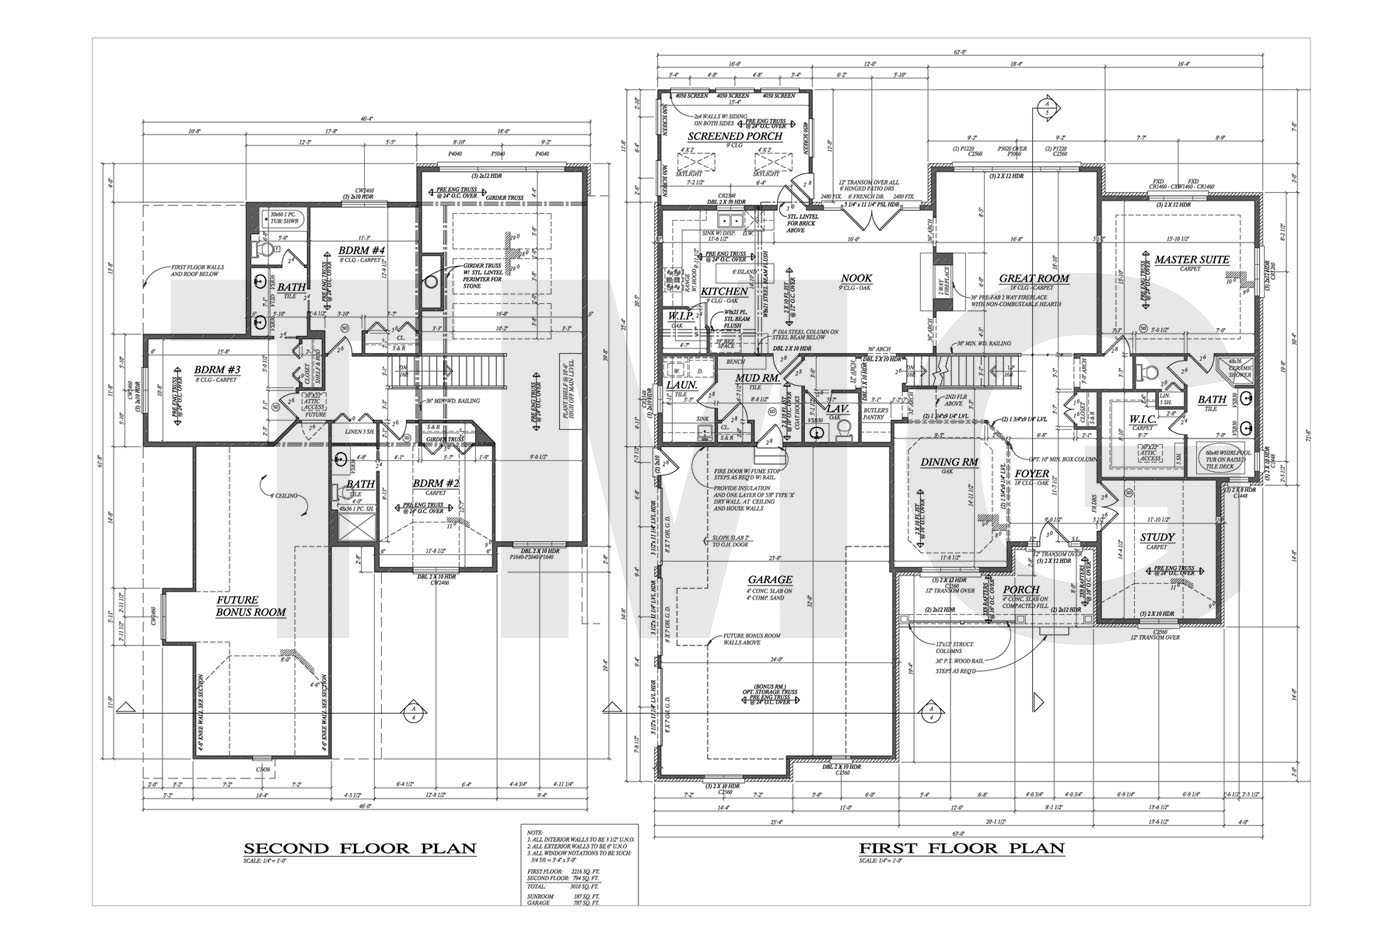 House plans drafting the magnum group tmg india for Sample house plans